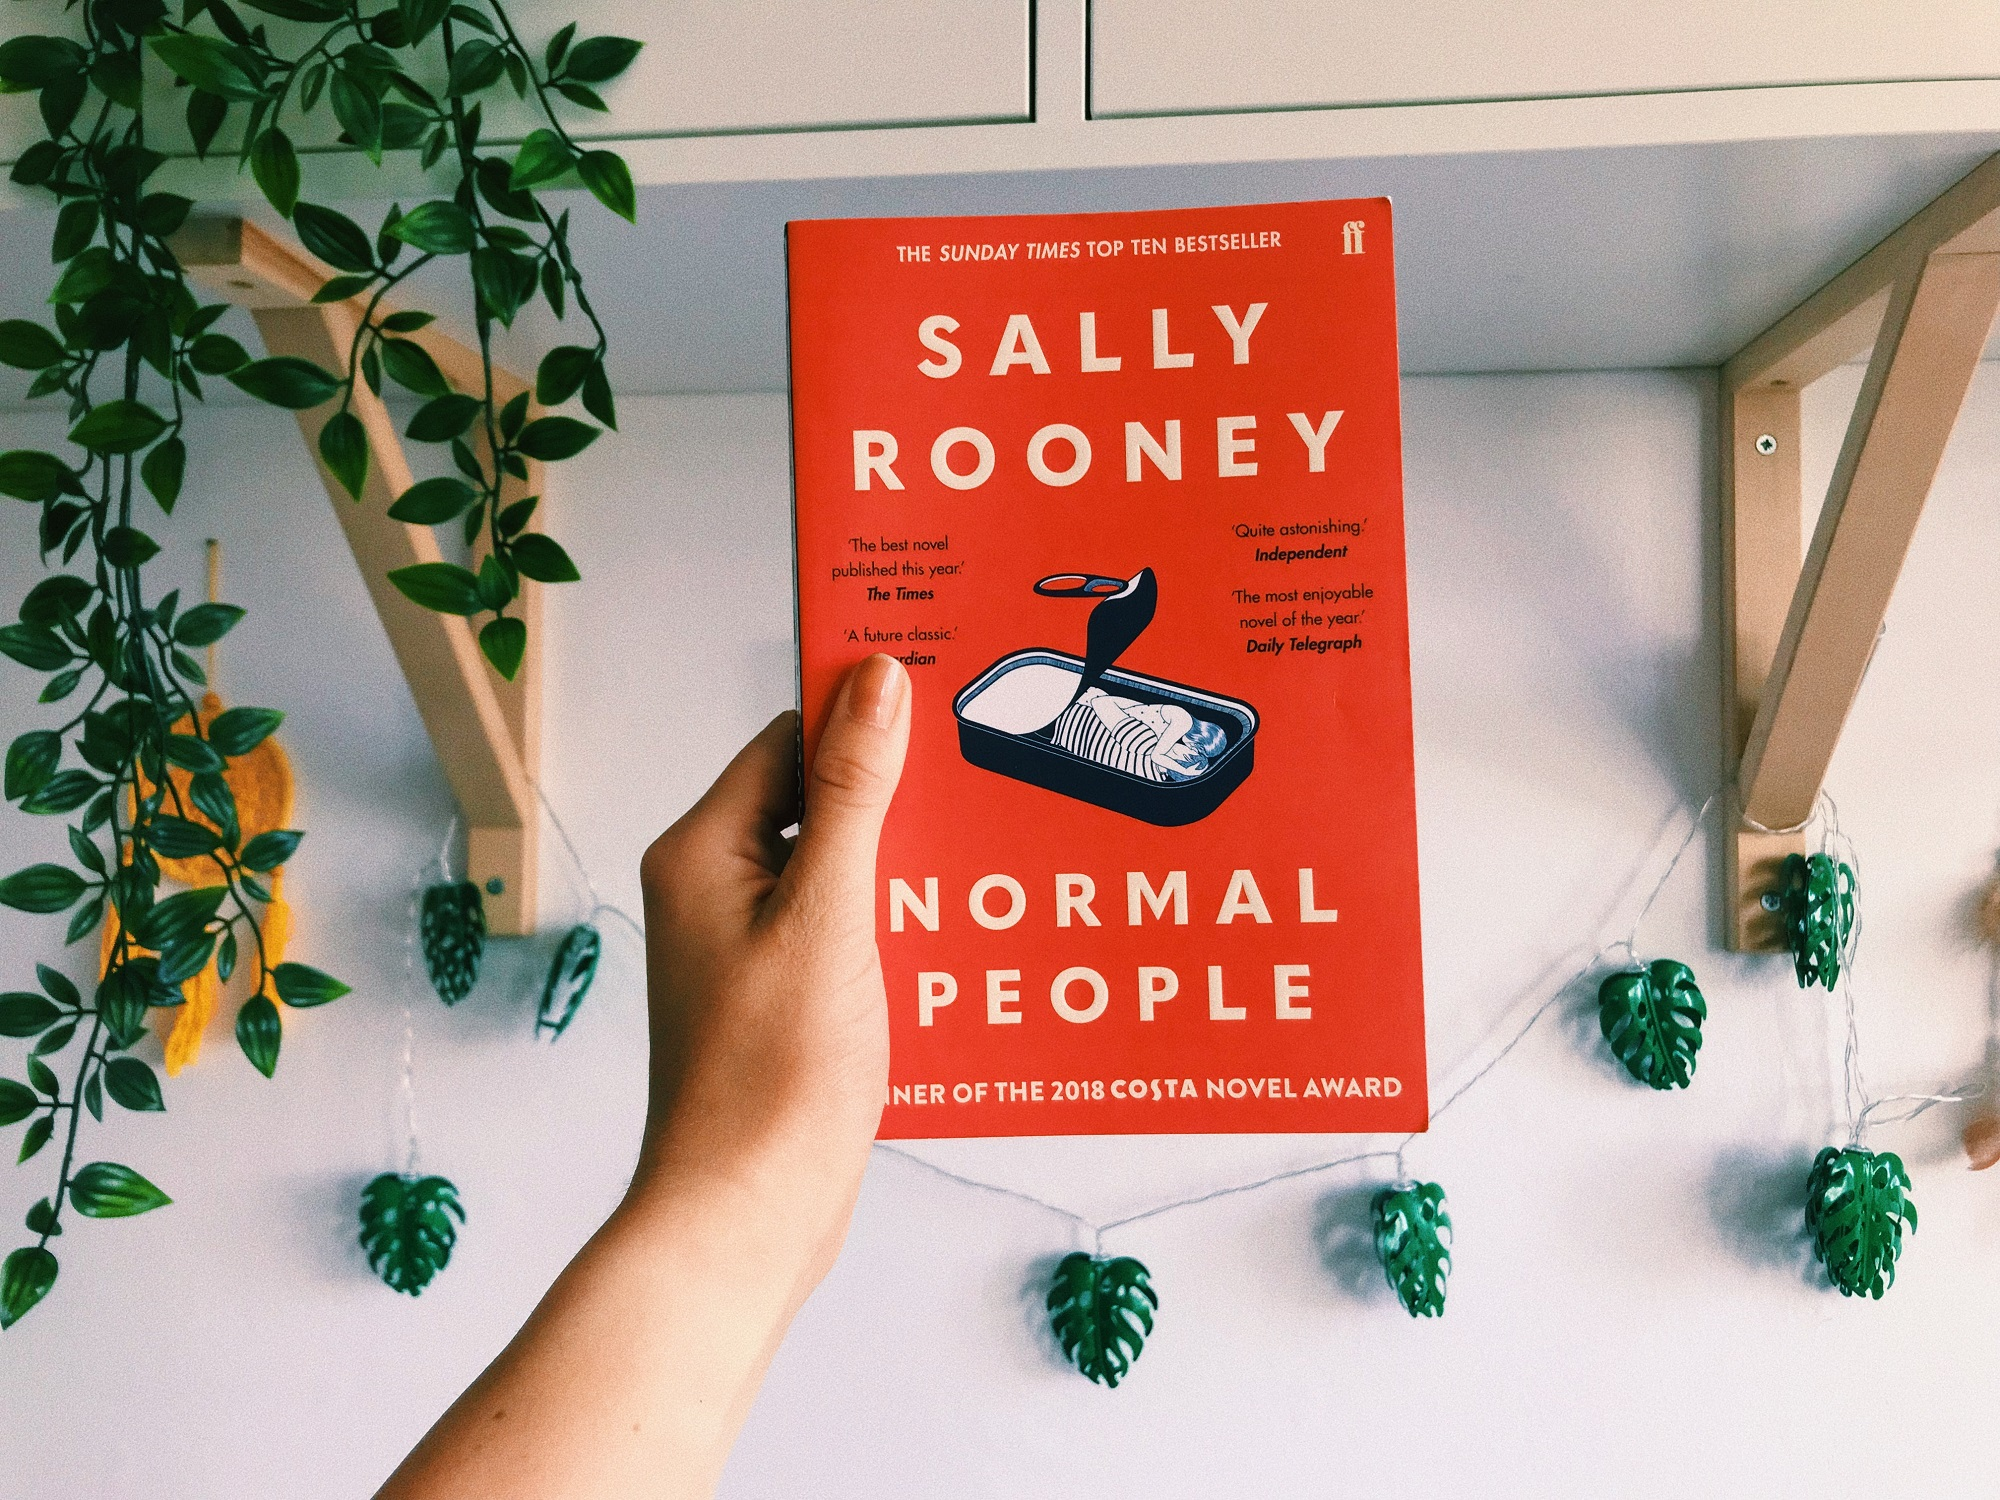 Normal-people-mini-book-review-written-by-charlotte-dawson